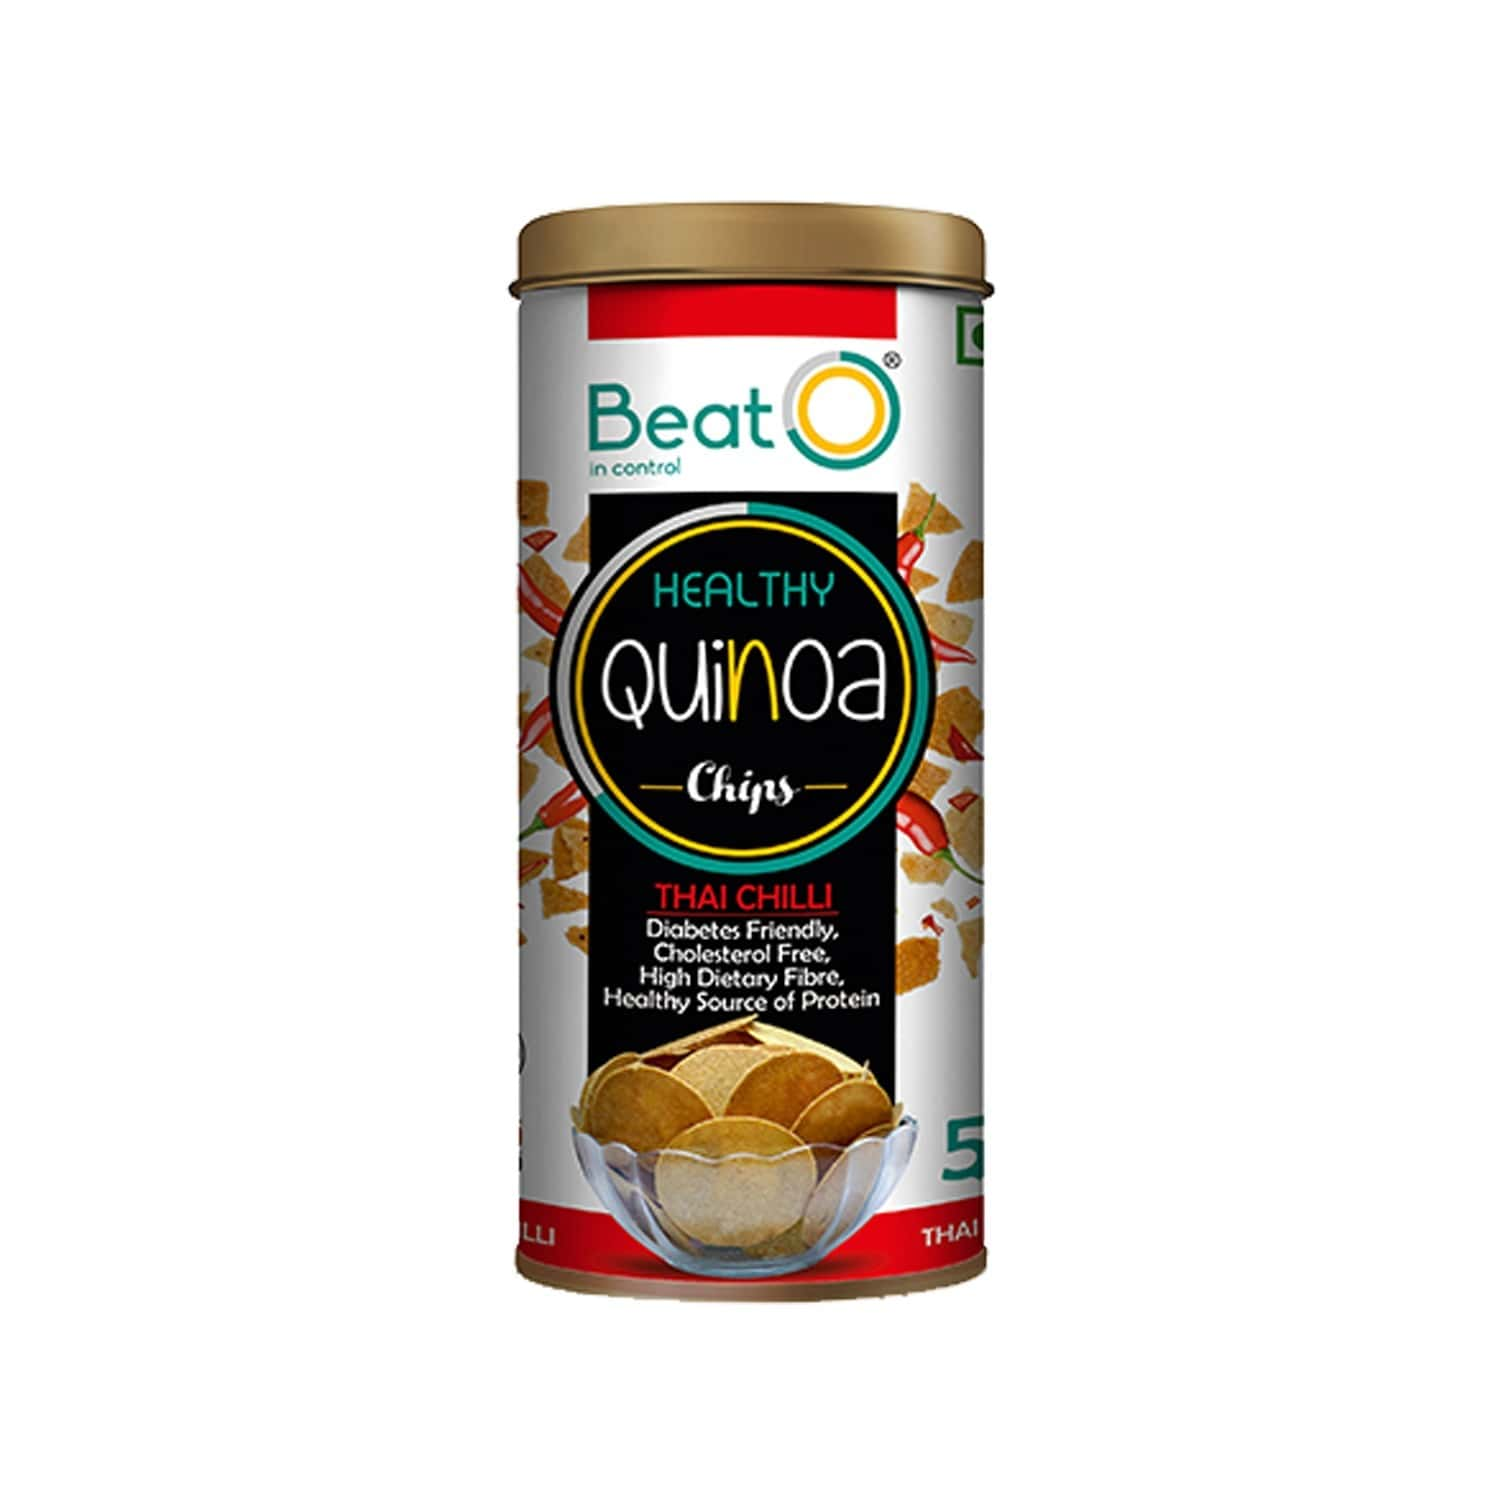 Beato Quinoa Chips - Thai Chilli 100 G